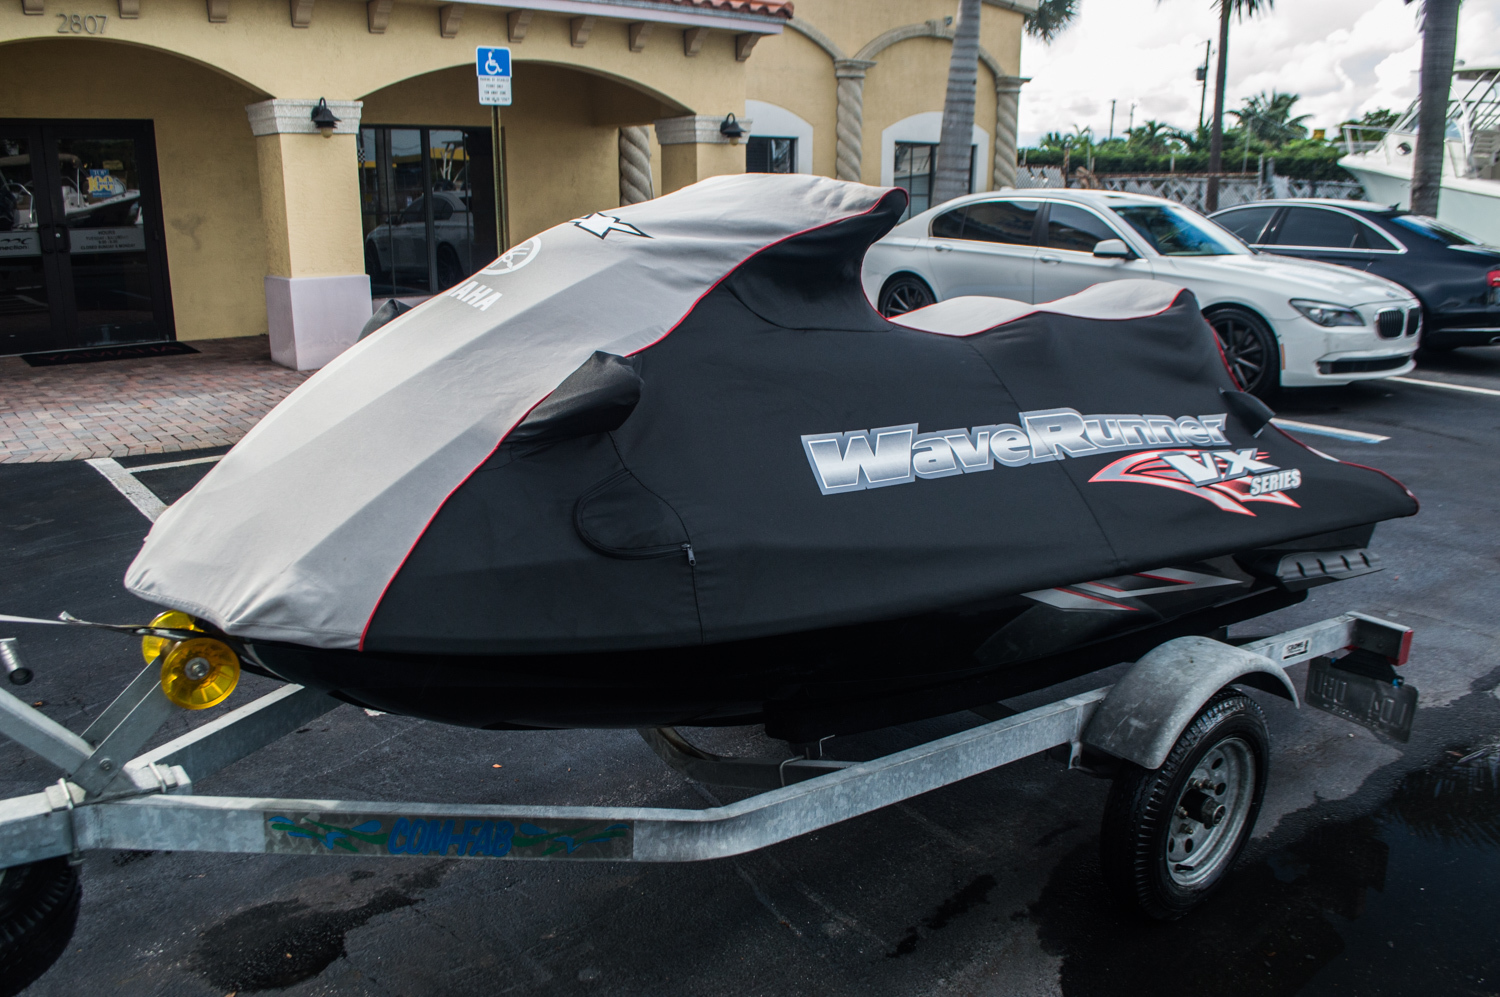 Thumbnail 20 for Used 2007 Yamaha VX Cruiser boat for sale in West Palm Beach, FL